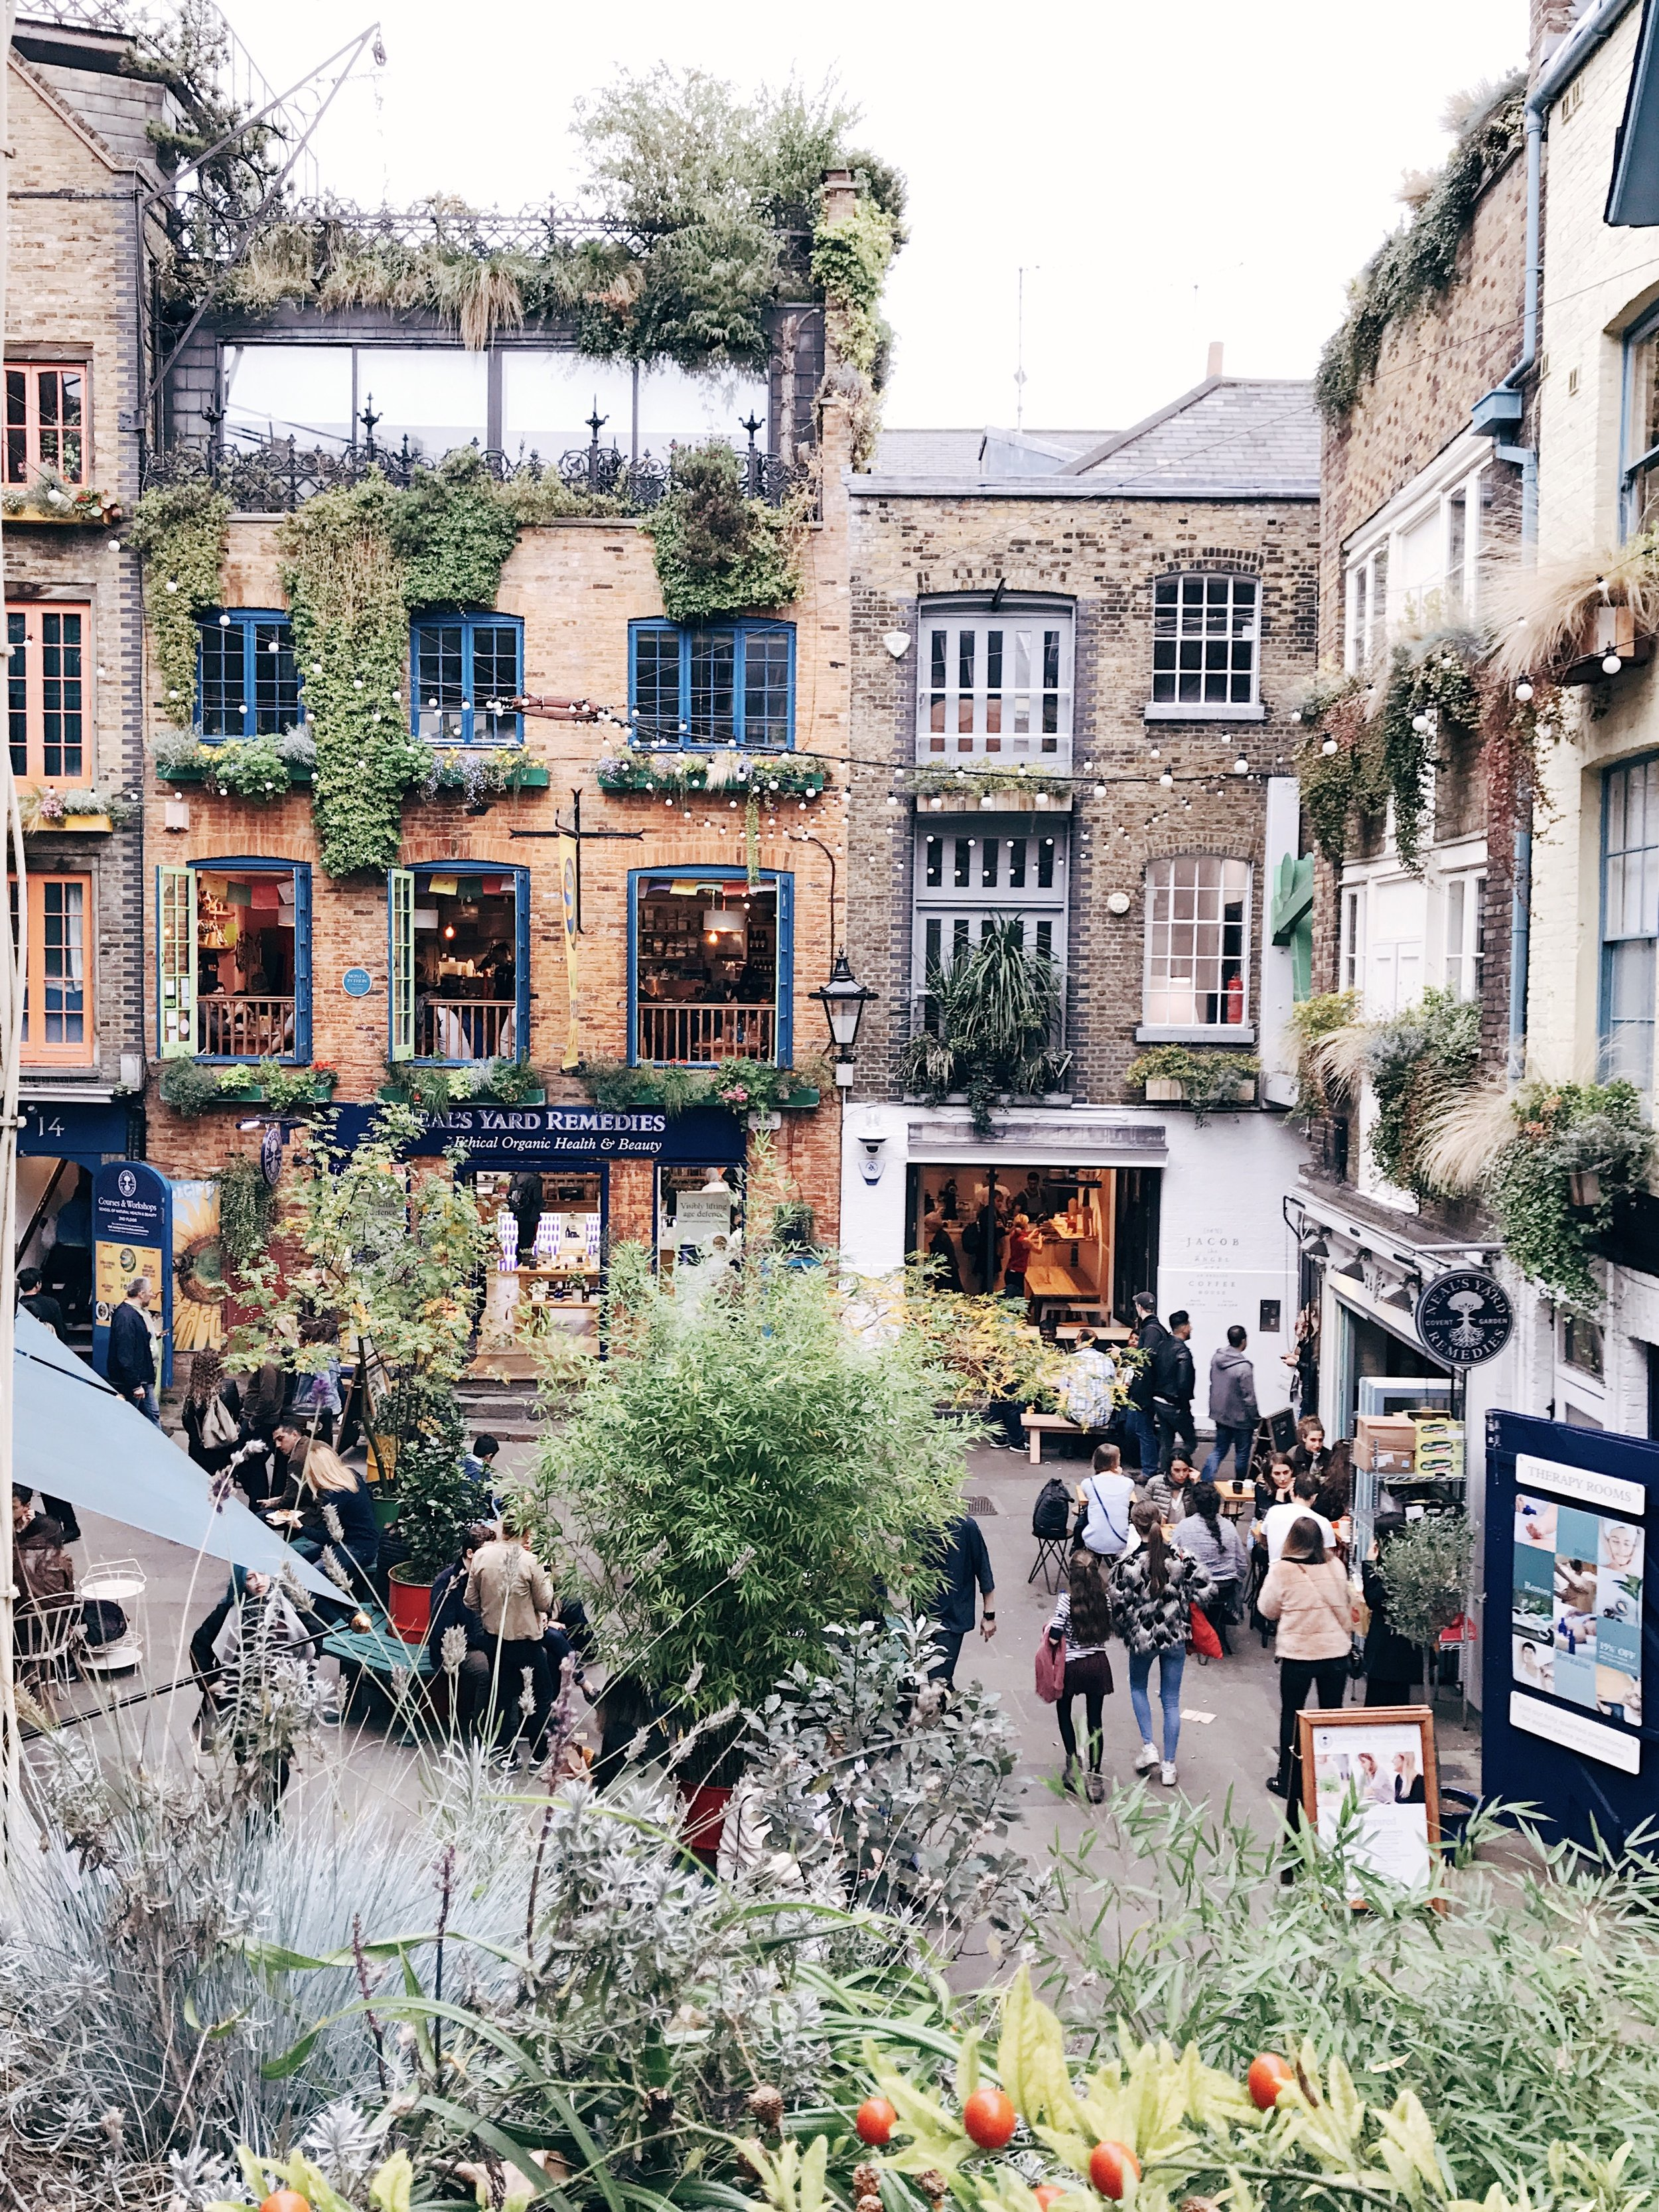 A view of Neal's Yard from Casanova & Daughters